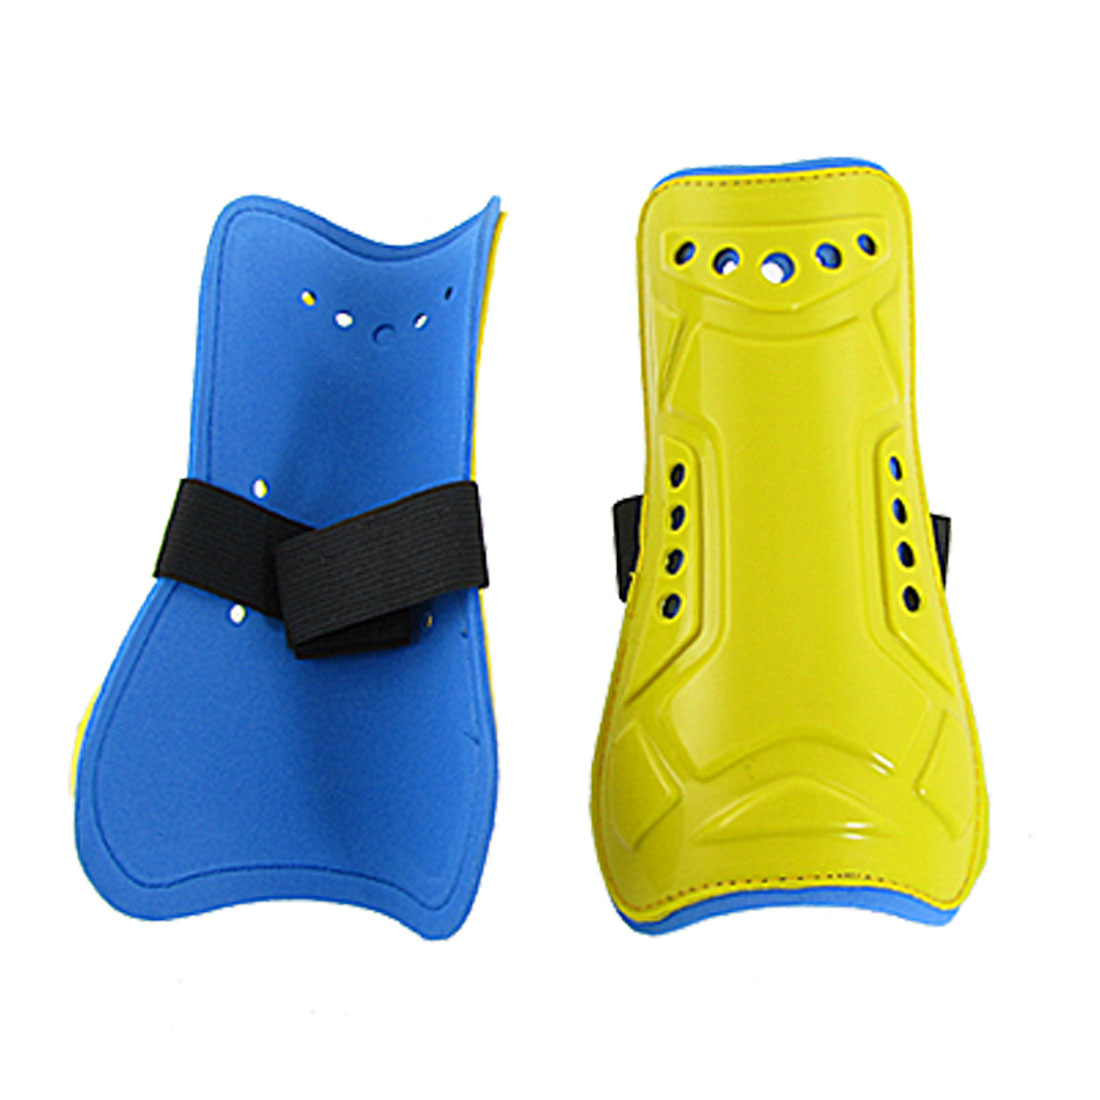 Children Kids Yellow Blue Plastic Foam Calf Protector Shin Support 2 Pcs